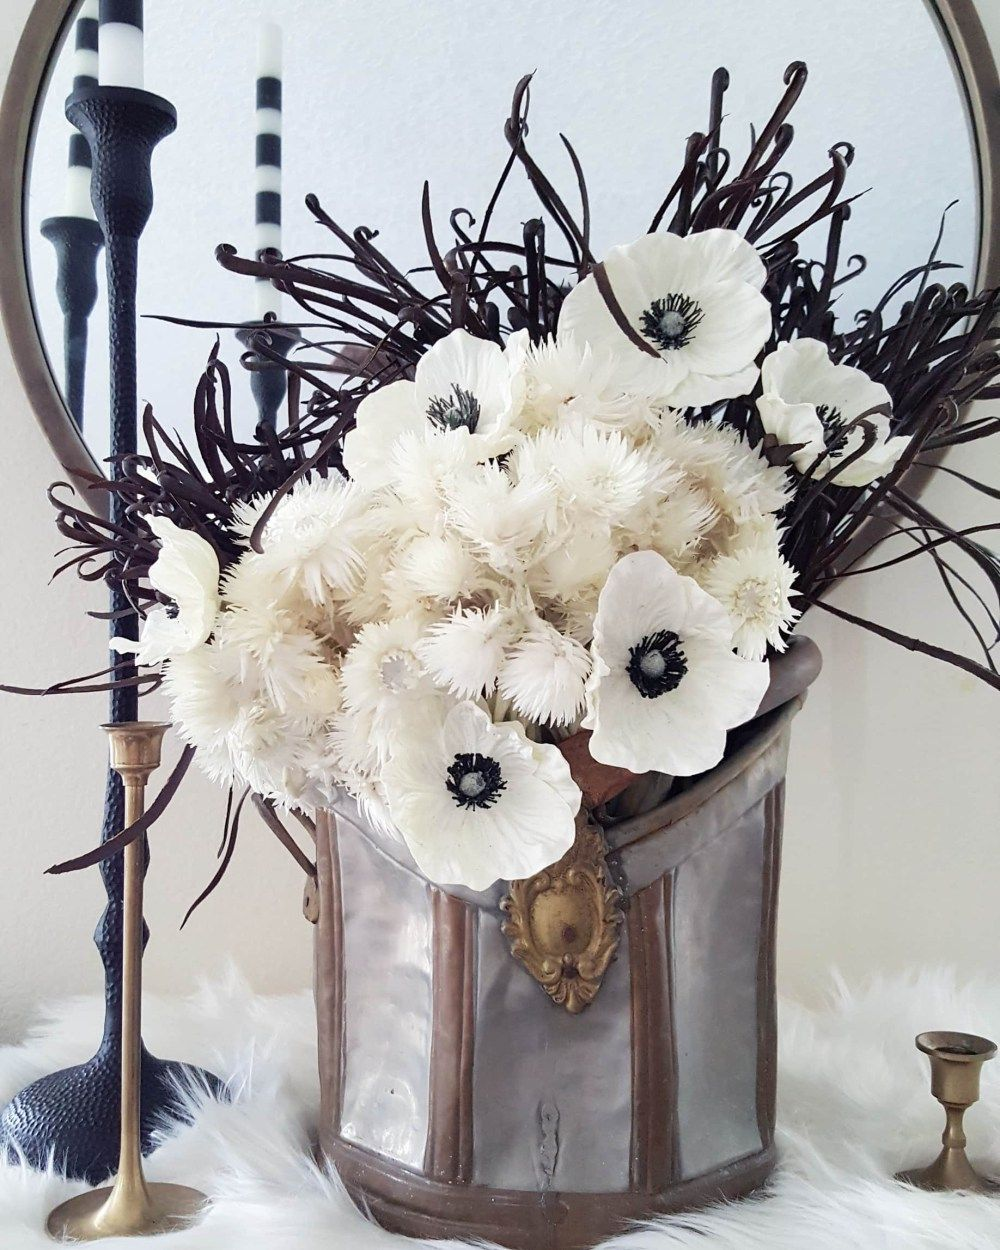 Using faux flowers in your fall and winter decor faux flowers faux flowers fall winter decor ideas black and white scan design arrangement mightylinksfo